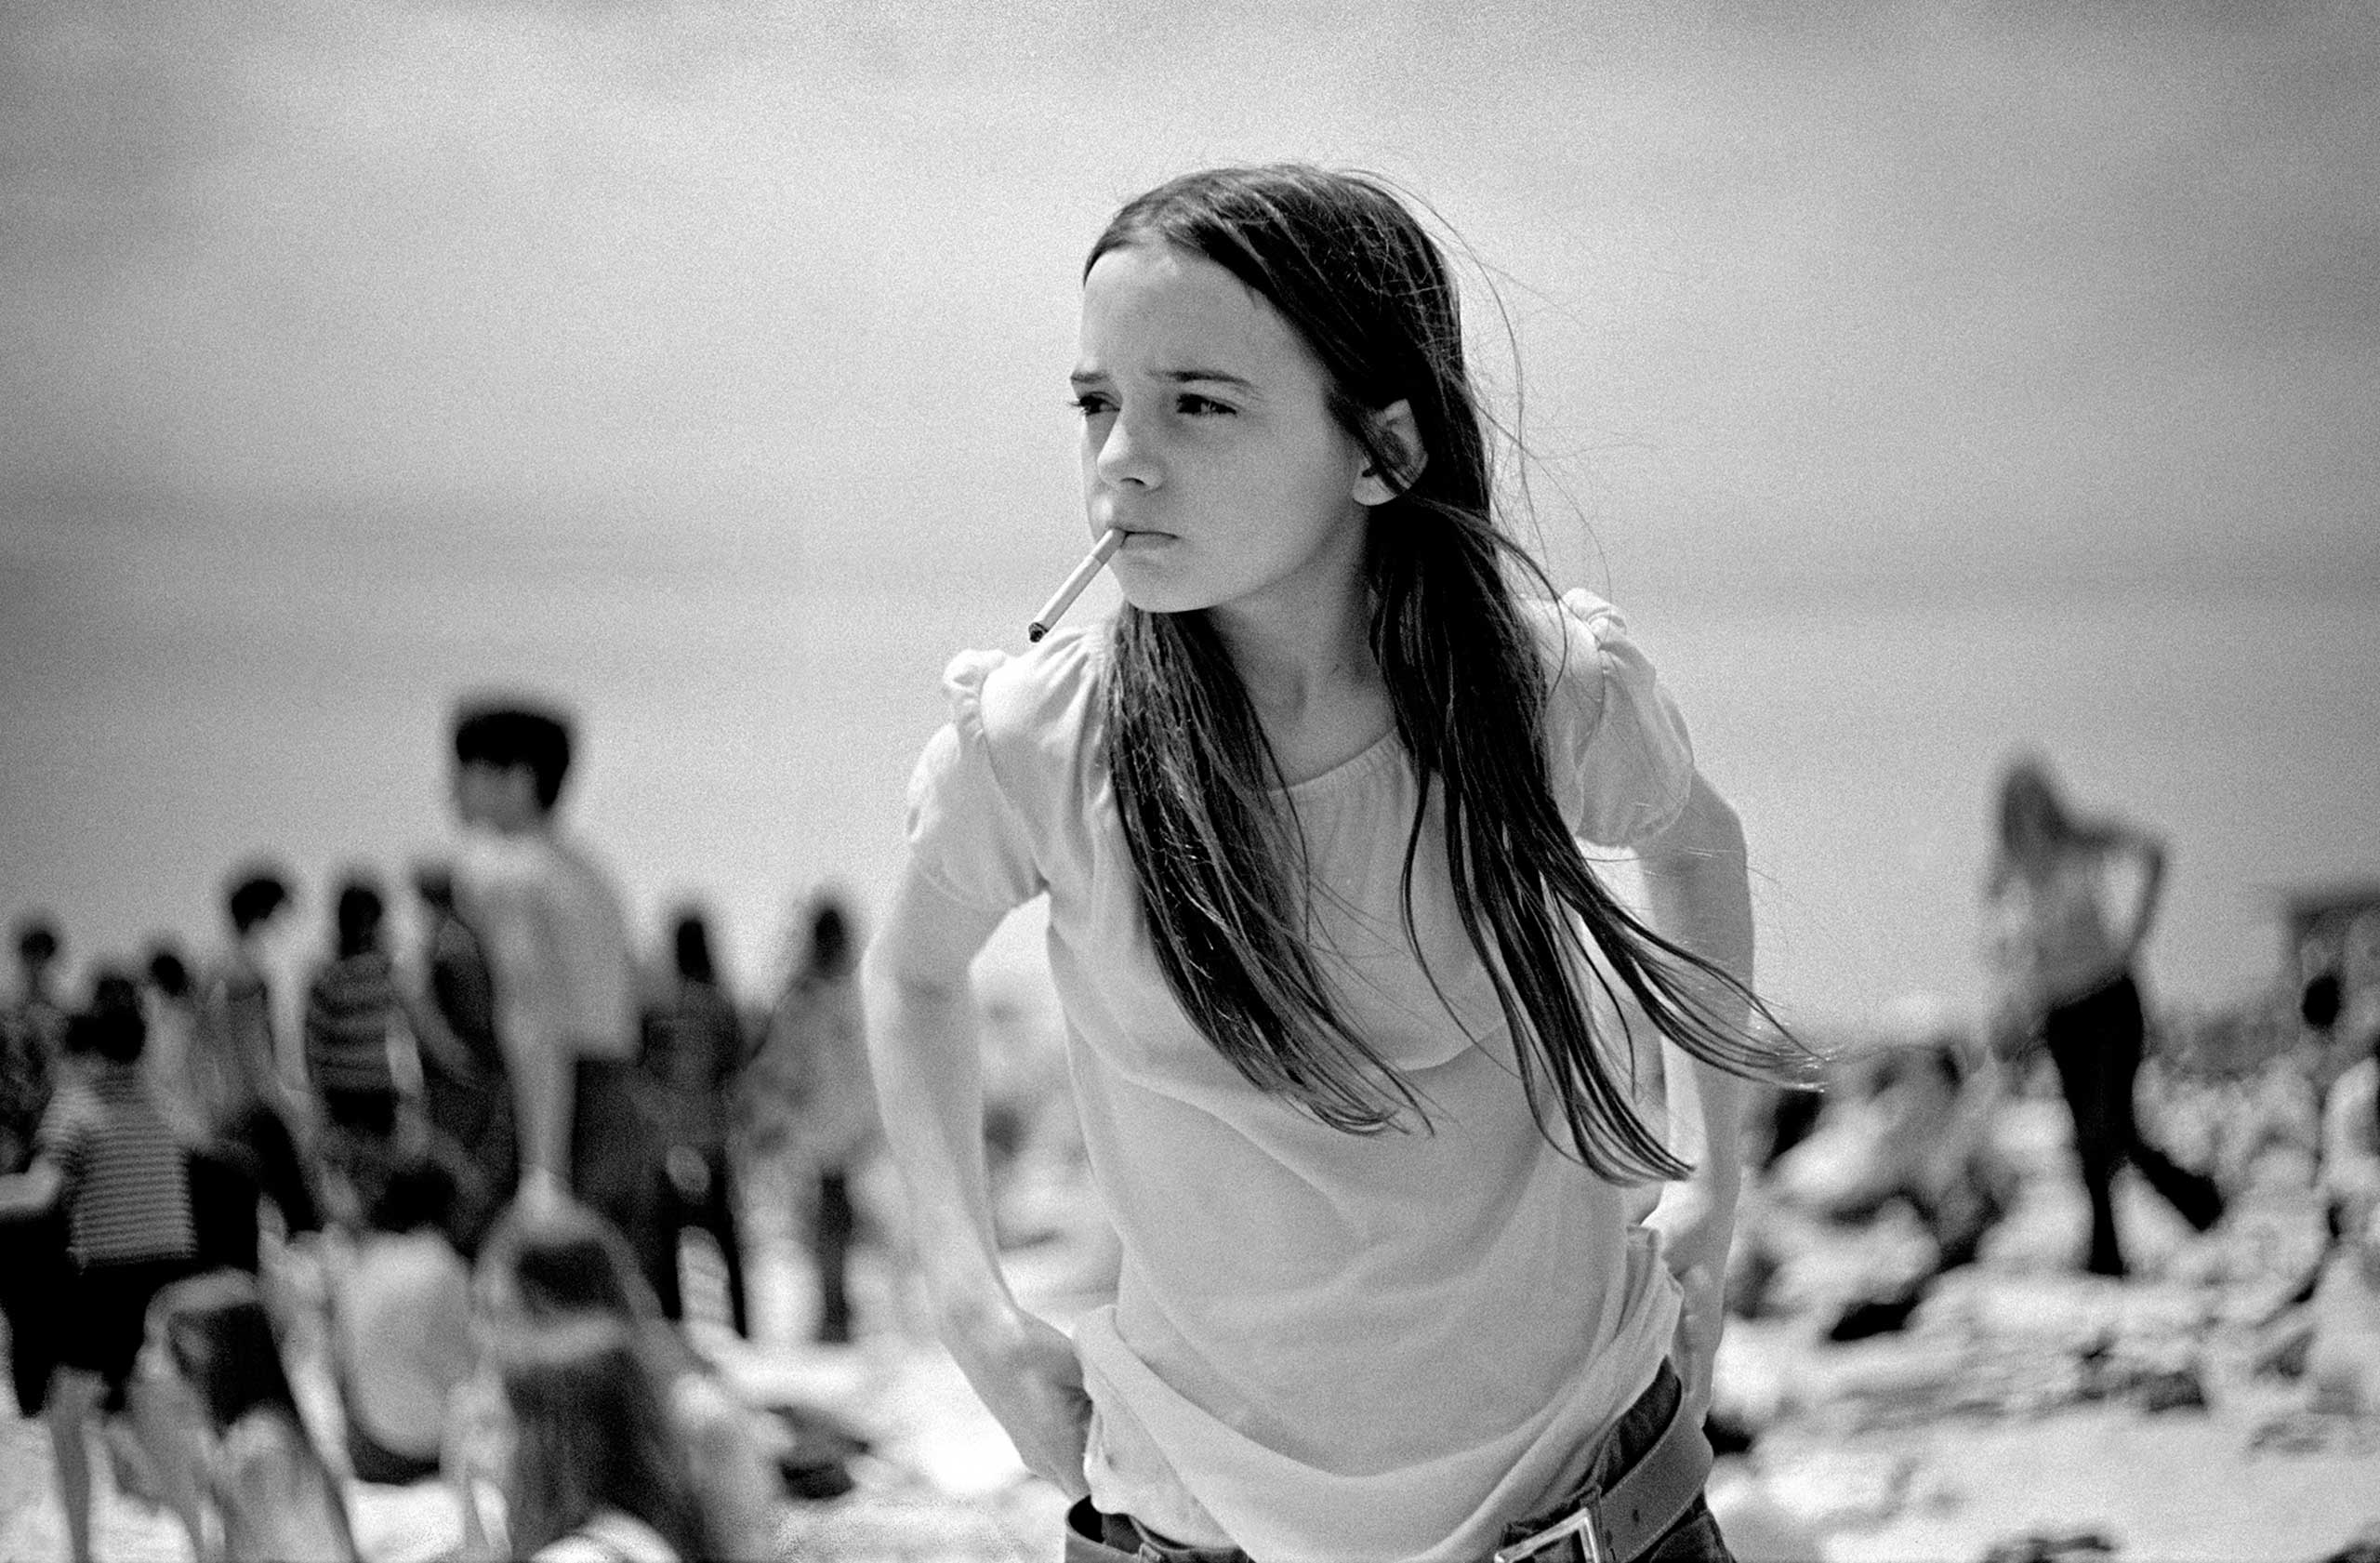 Priscilla, 1969. When my wife and I first moved to Long Island, a friend suggested I visit Jones Beach because of my love of                               photographing people.  The ever changing variety of people, faces, bodies, and expressions, decade after decade,                               always fascinates me. Priscilla seems to embody strength and determination and the quality of a timeless image.